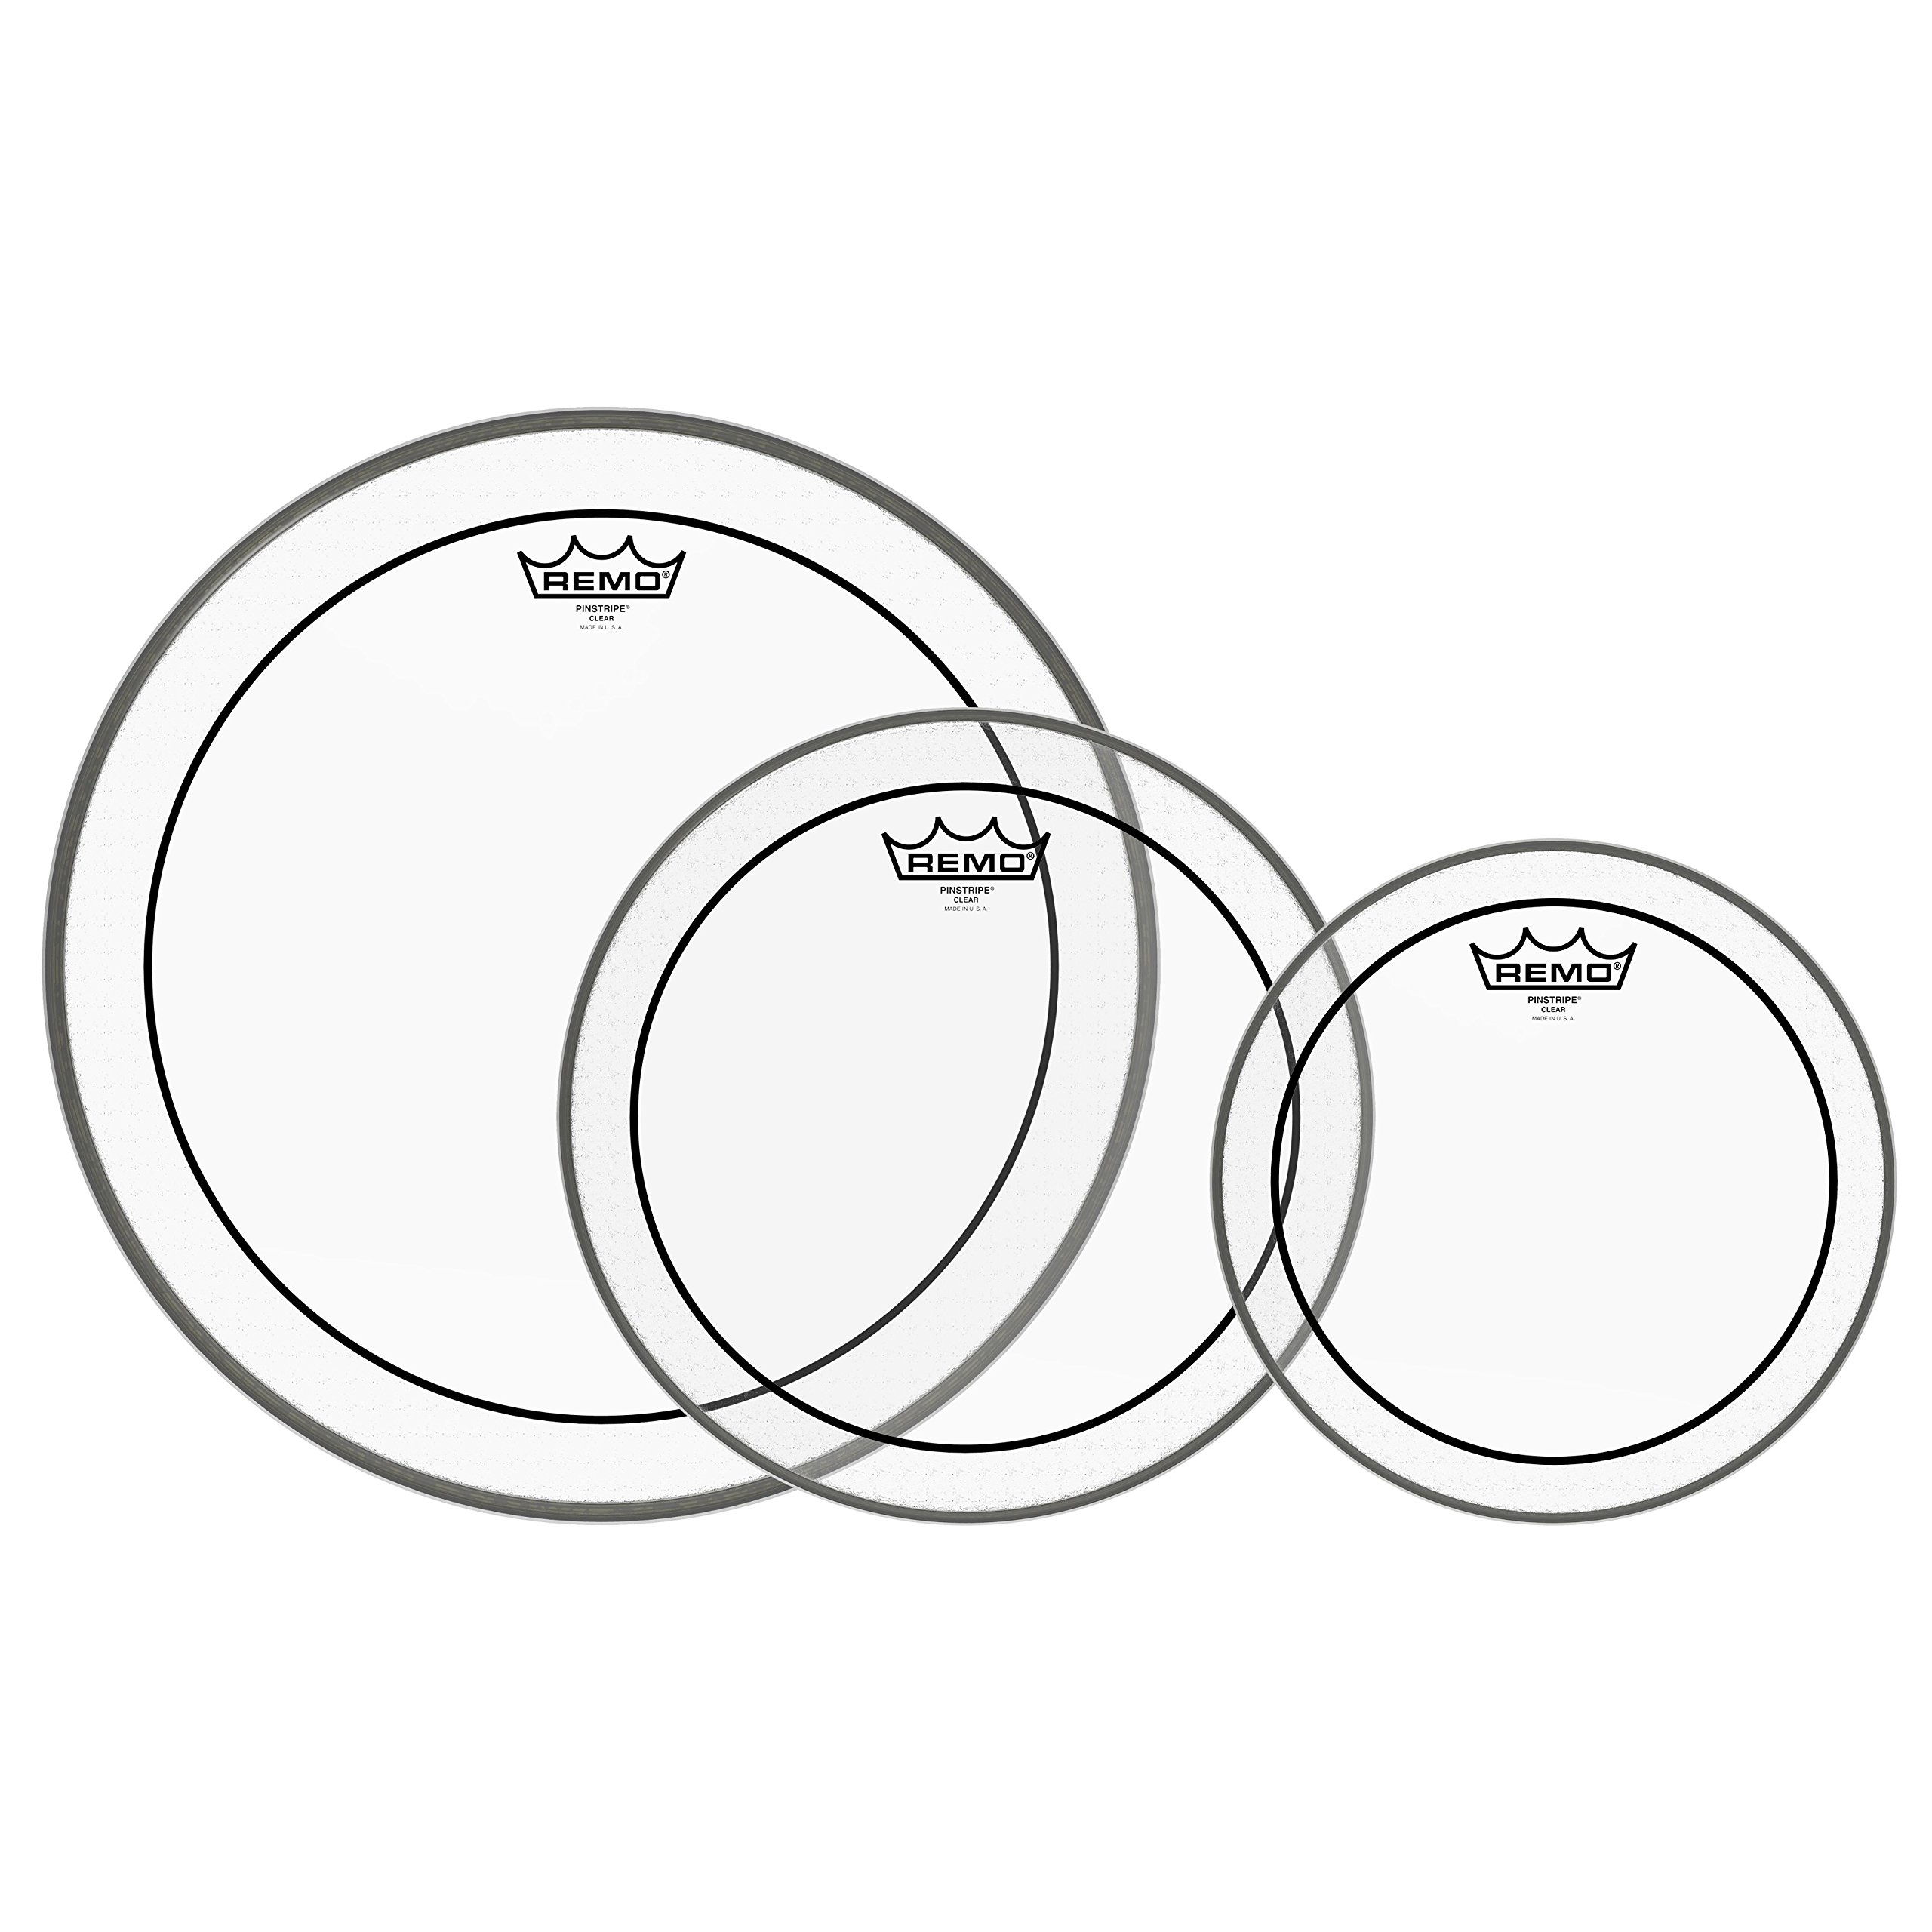 Remo PP-1470-PS Pinstripe Clear Tom Drumhead Pack - 10'', 12'' & 16''